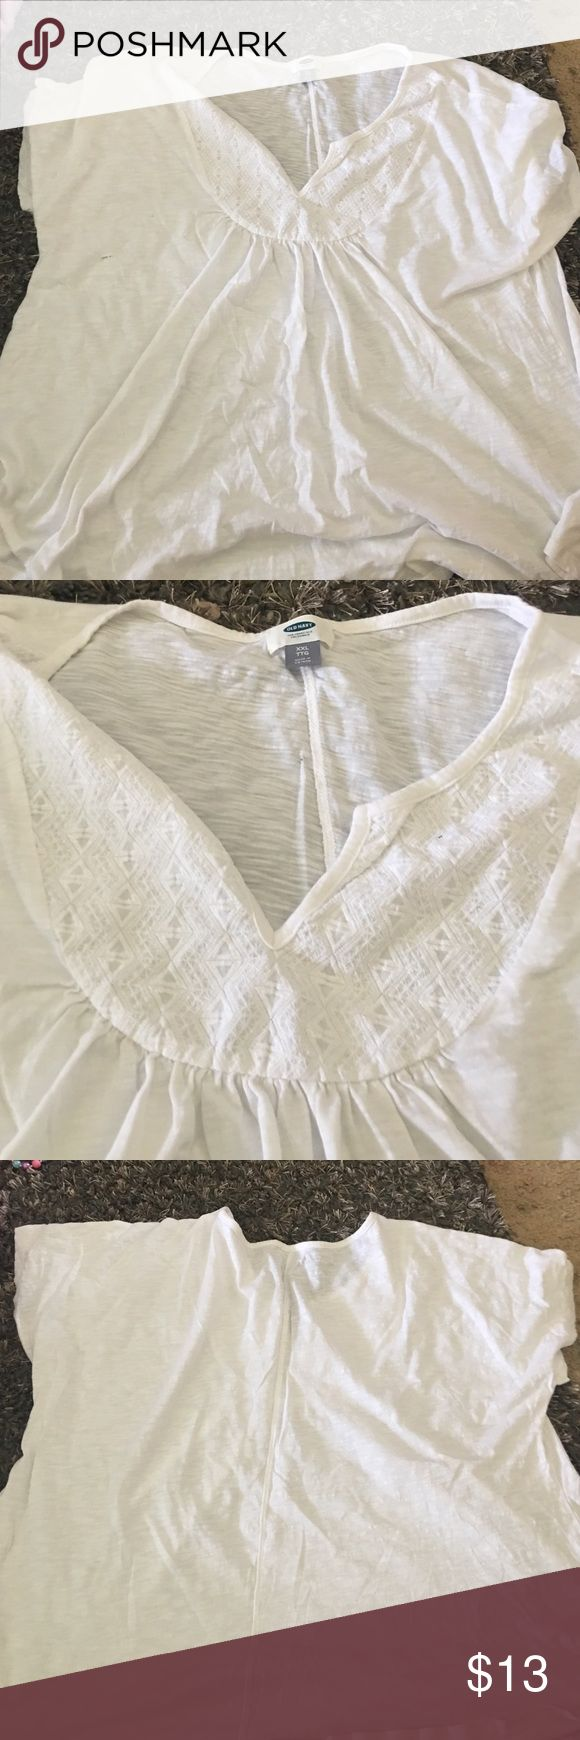 NWOT WHITE OLD NAVY SHORT SLEEVE TOP NWOT OLD NAVY FLOWY WHITE, OPEN VNECK WITH DETAIL SHORT SLEEVE TOP IN XXL Old Navy Tops Tees - Short Sleeve